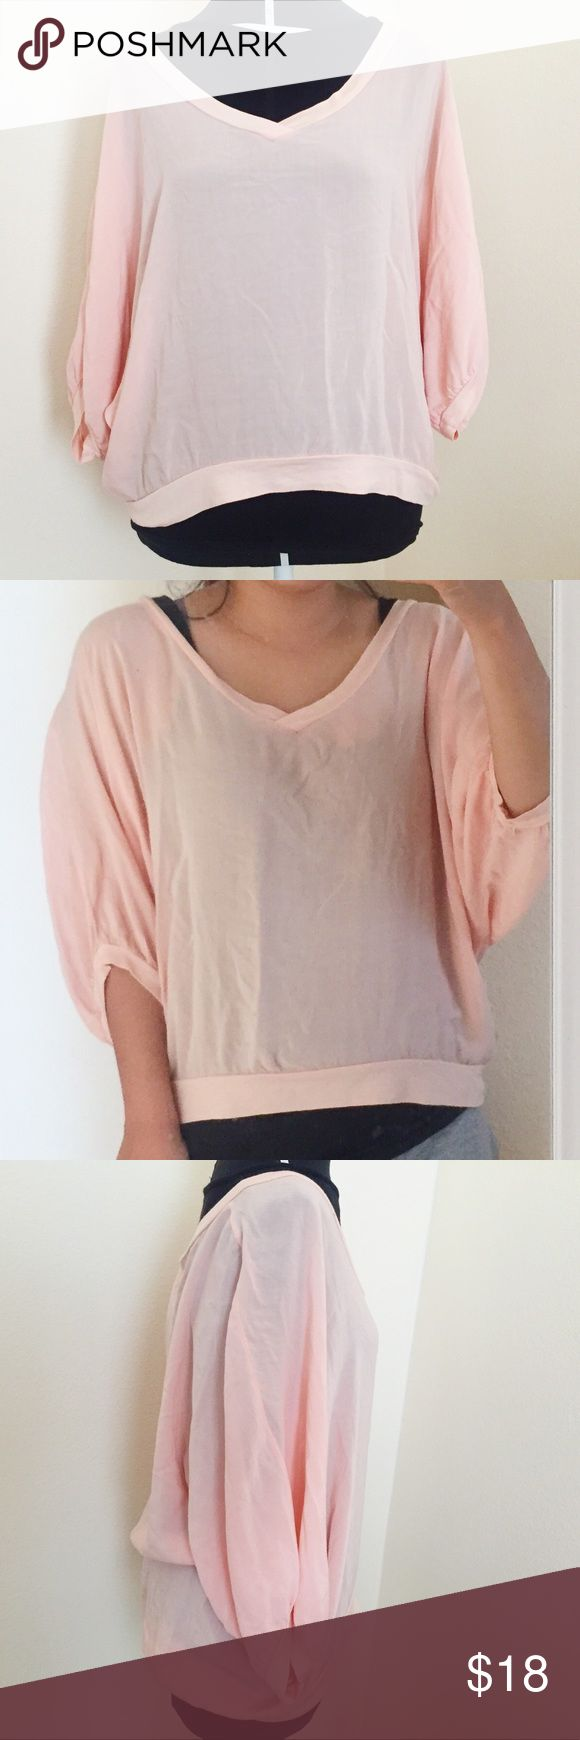 Splendid Blush Pink Top Great condition. Slightly sheer. 100% Rayon. Splendid Tops Blouses